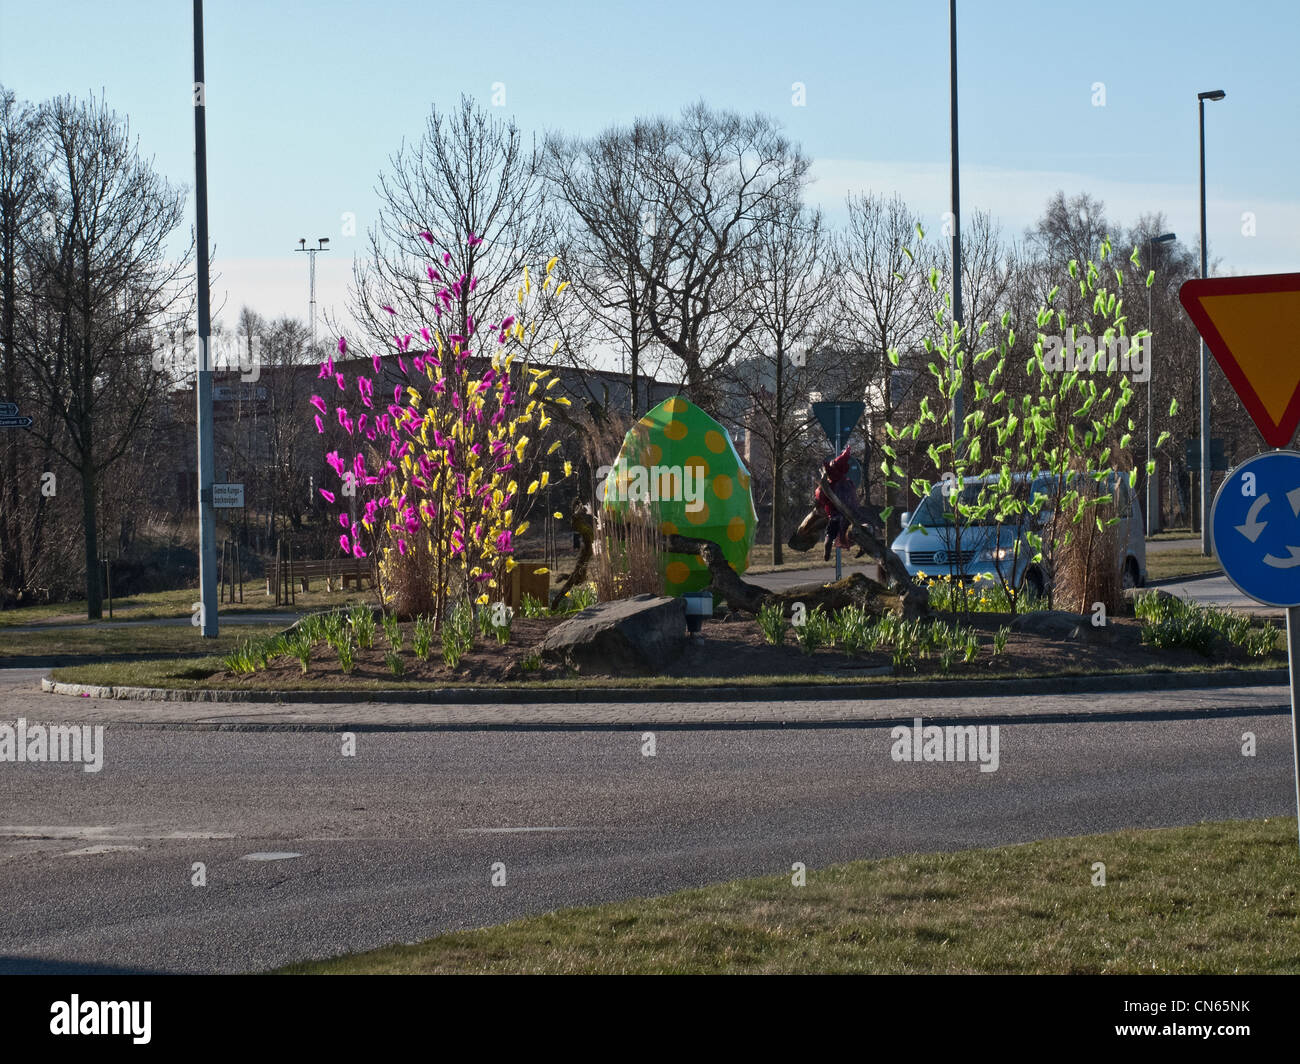 Roundabout with Easter feathers decorated trees. - Stock Image